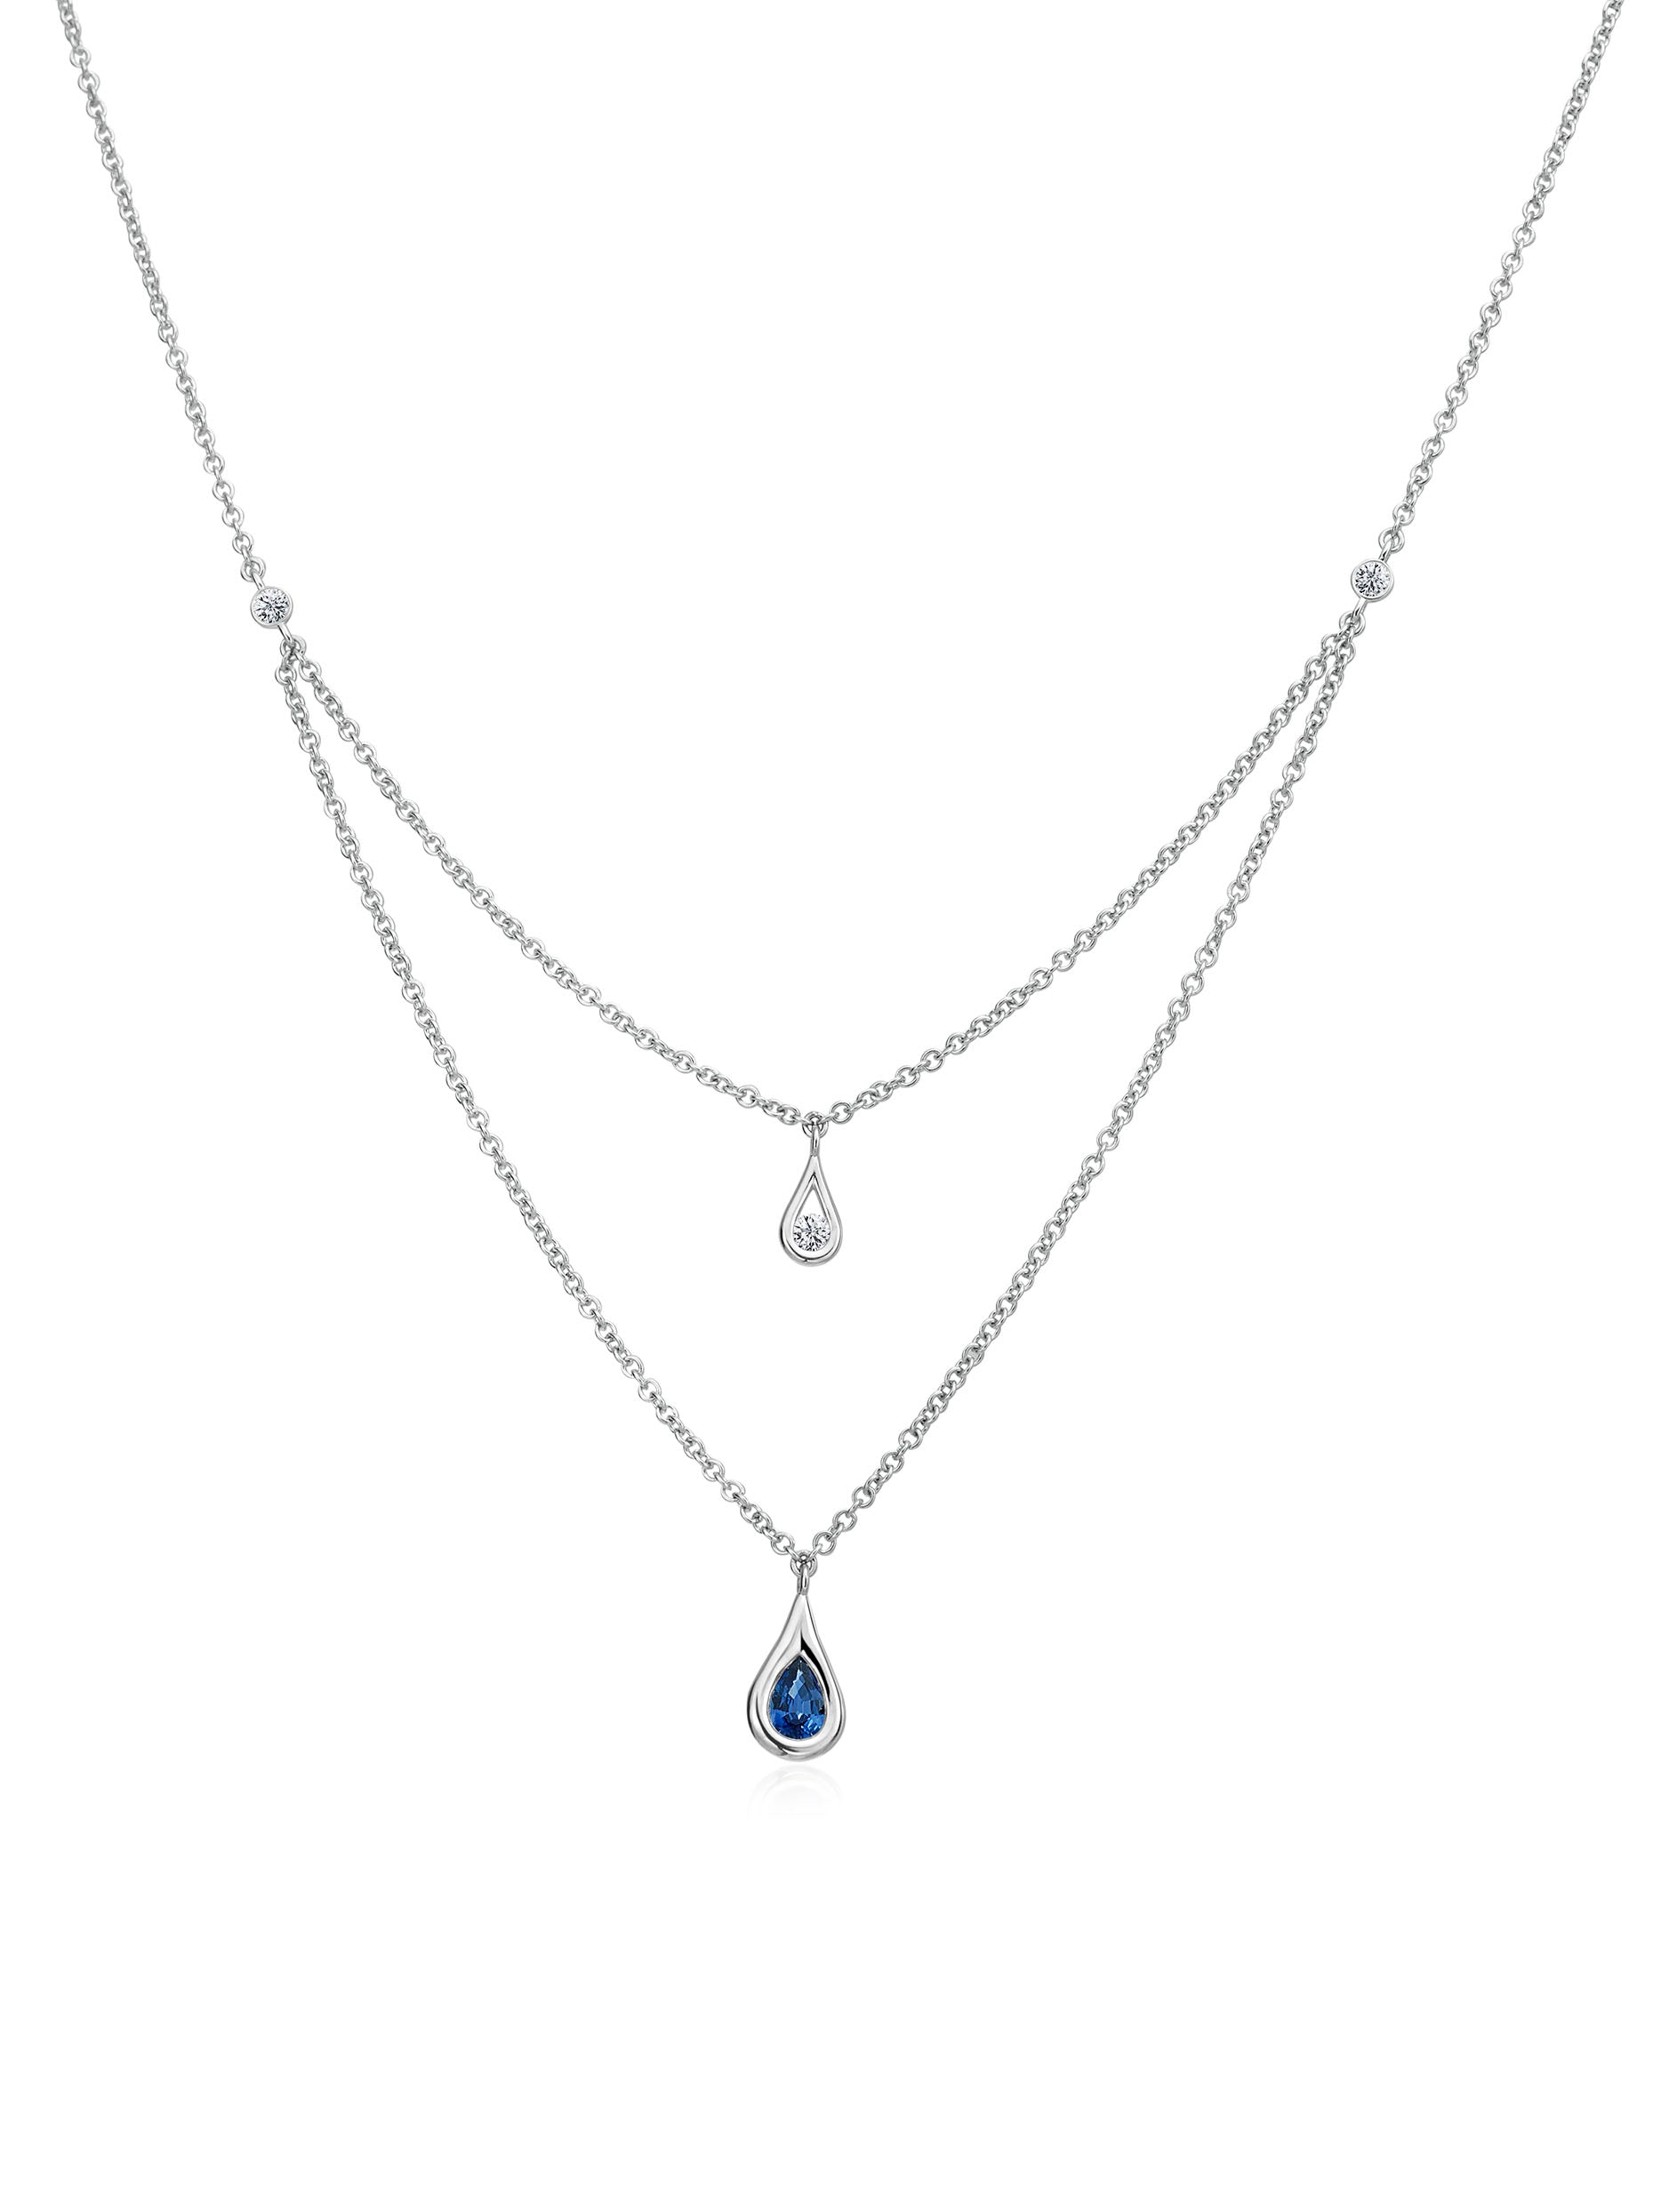 Petite Double Layer Diamond and Sapphire Necklace